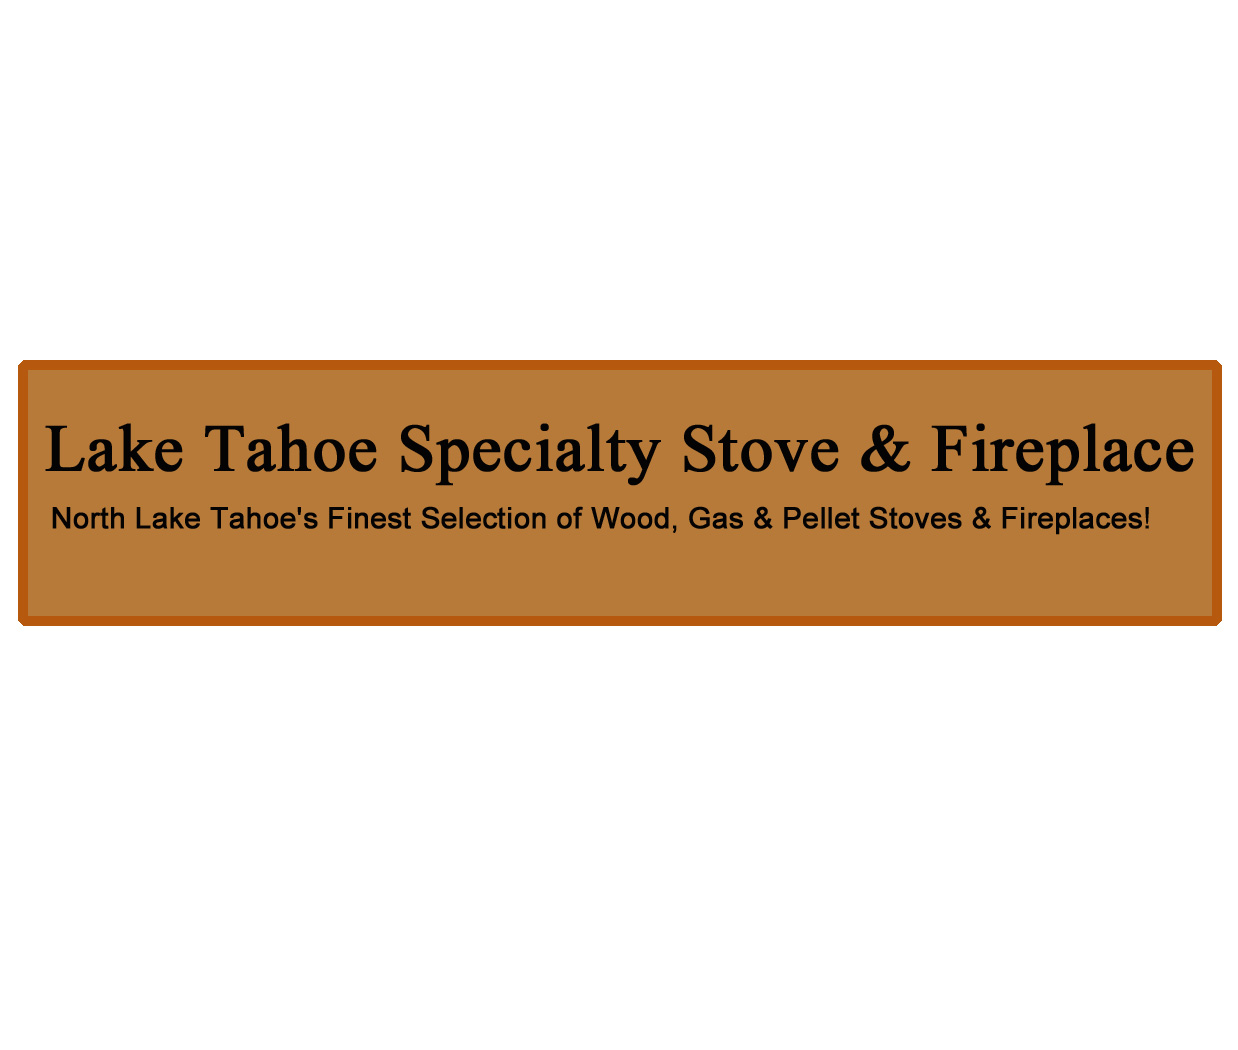 Lake Tahoe Specialty Stove and Fireplace